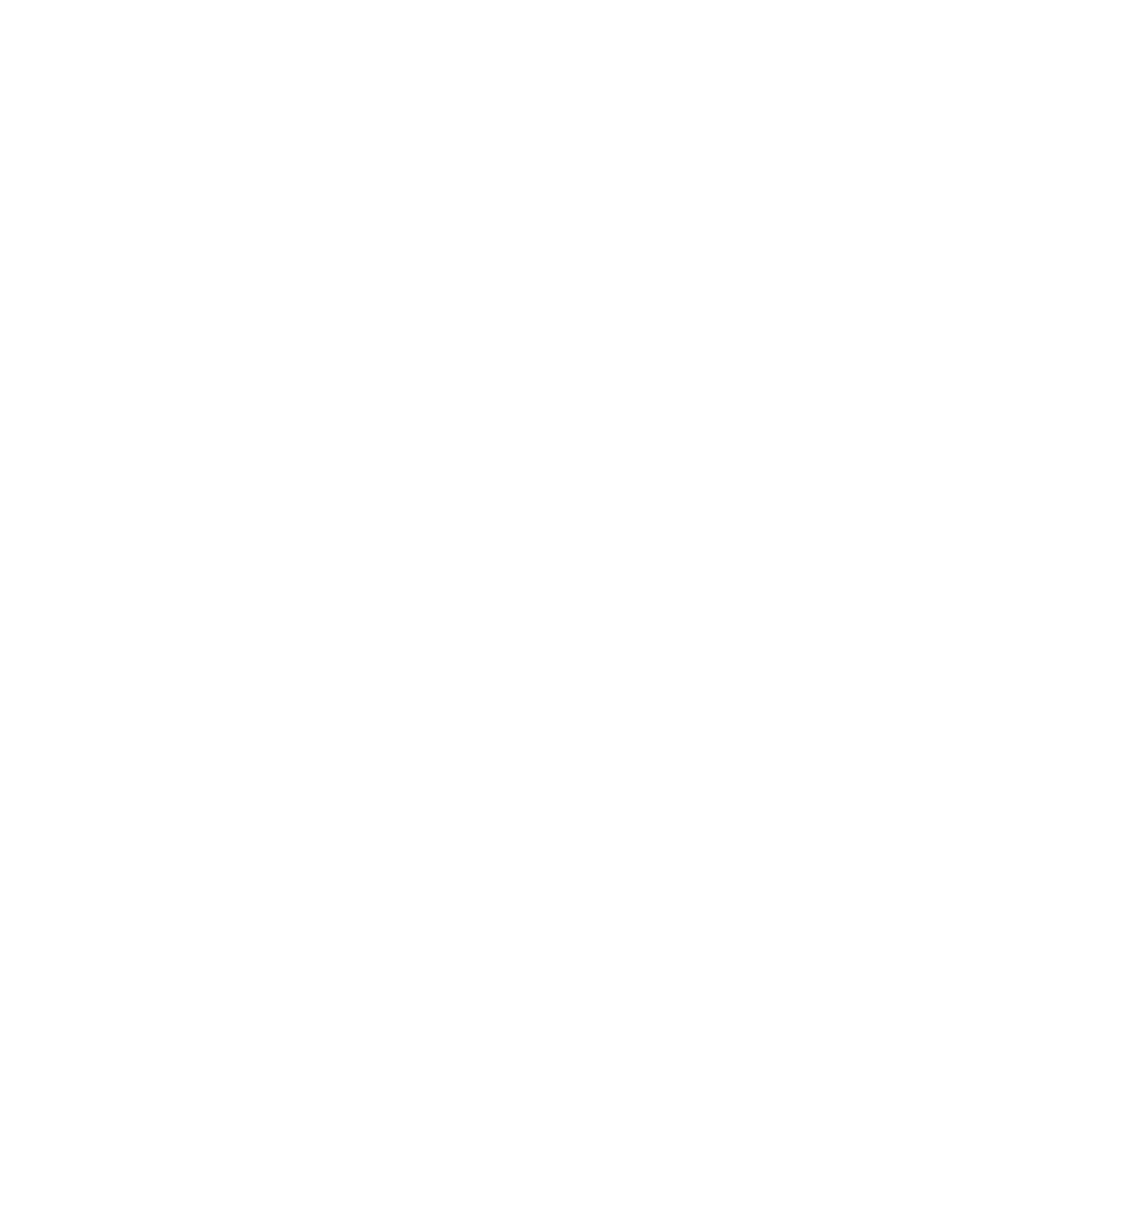 equal-housing-opportunity-logo-1200.png